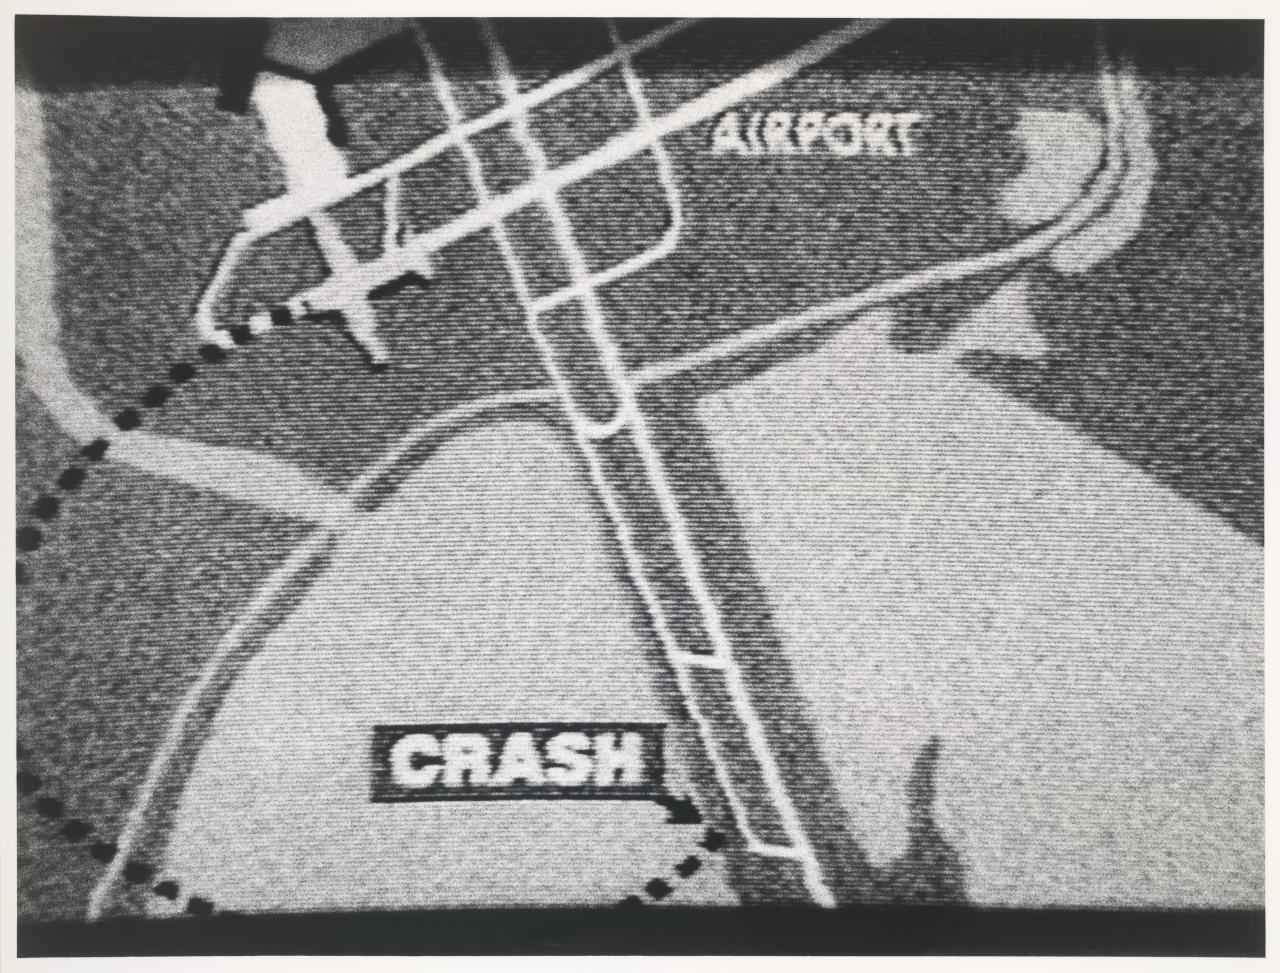 Crash, Kingsford Smith Airport